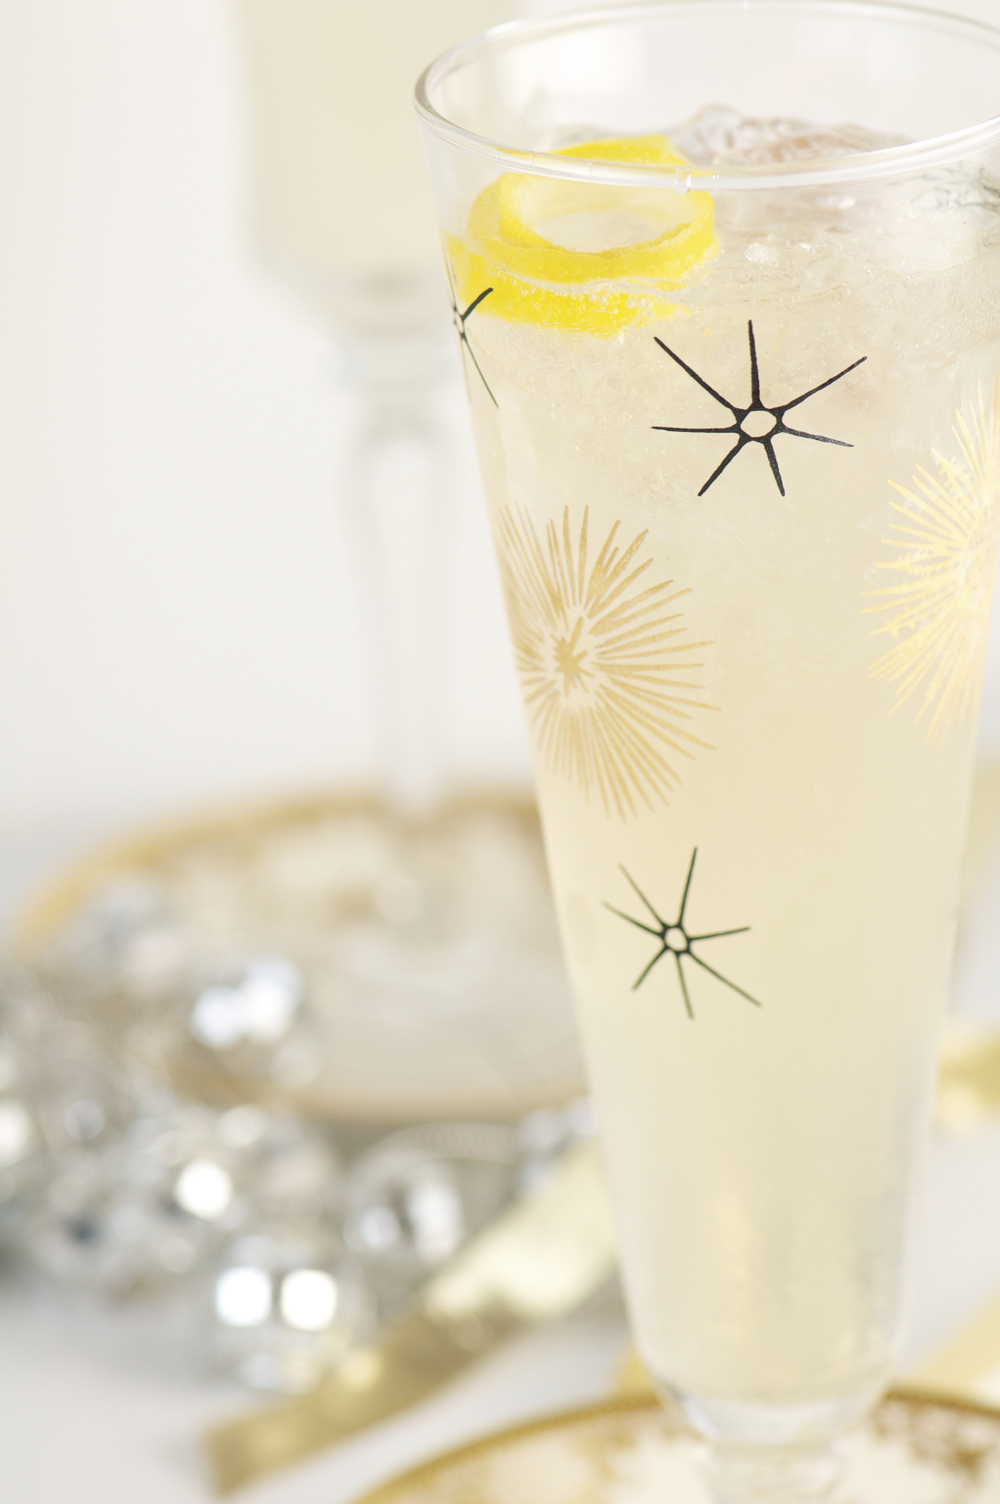 Scott's Sparkling Cocktail with BeeSweet Lemonade